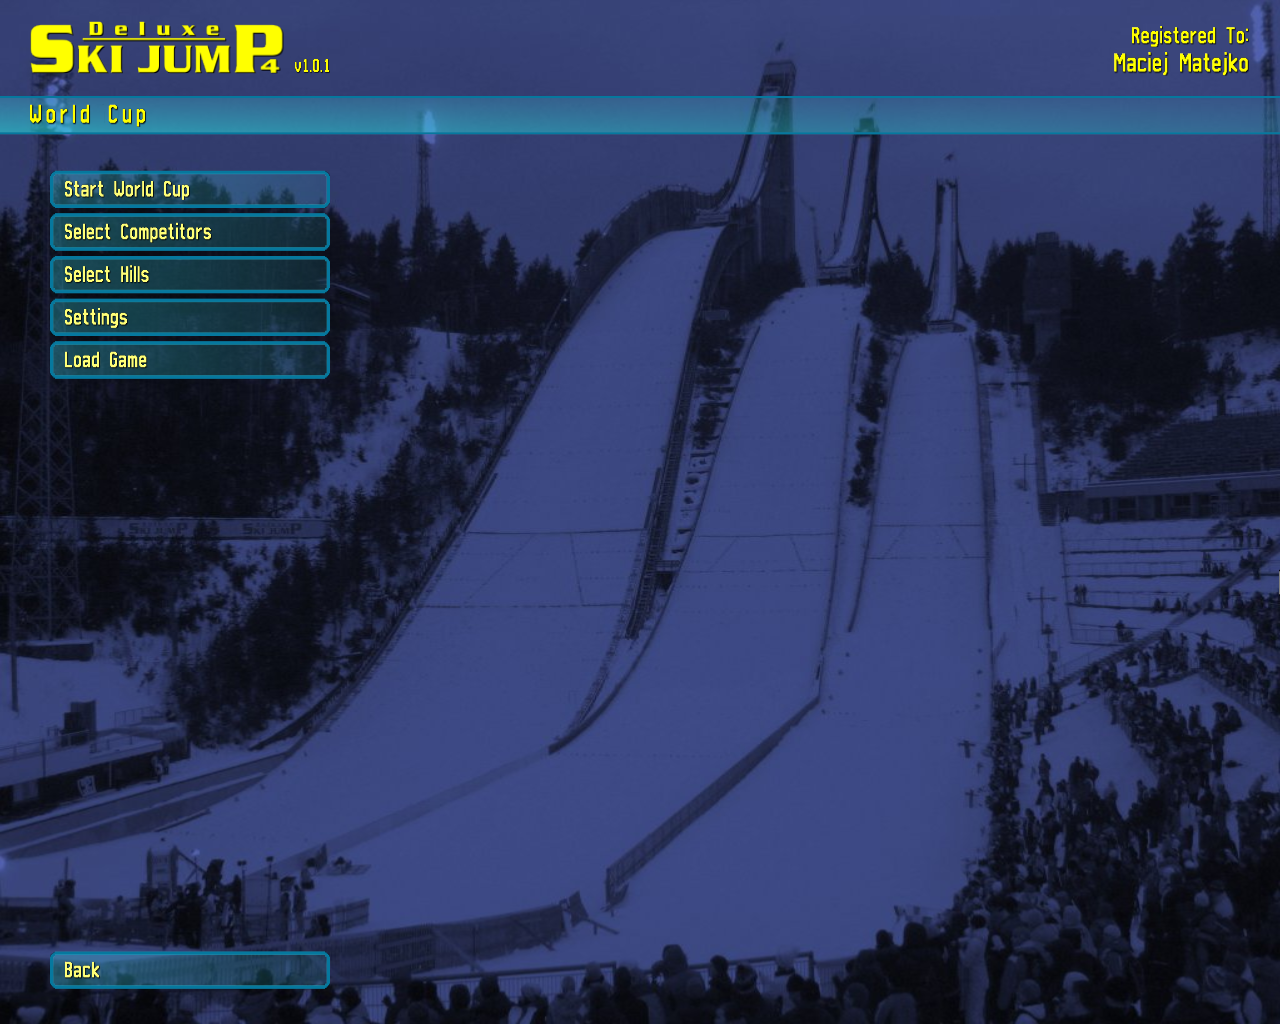 Deluxe Ski Jump 4 Windows World Cup menu